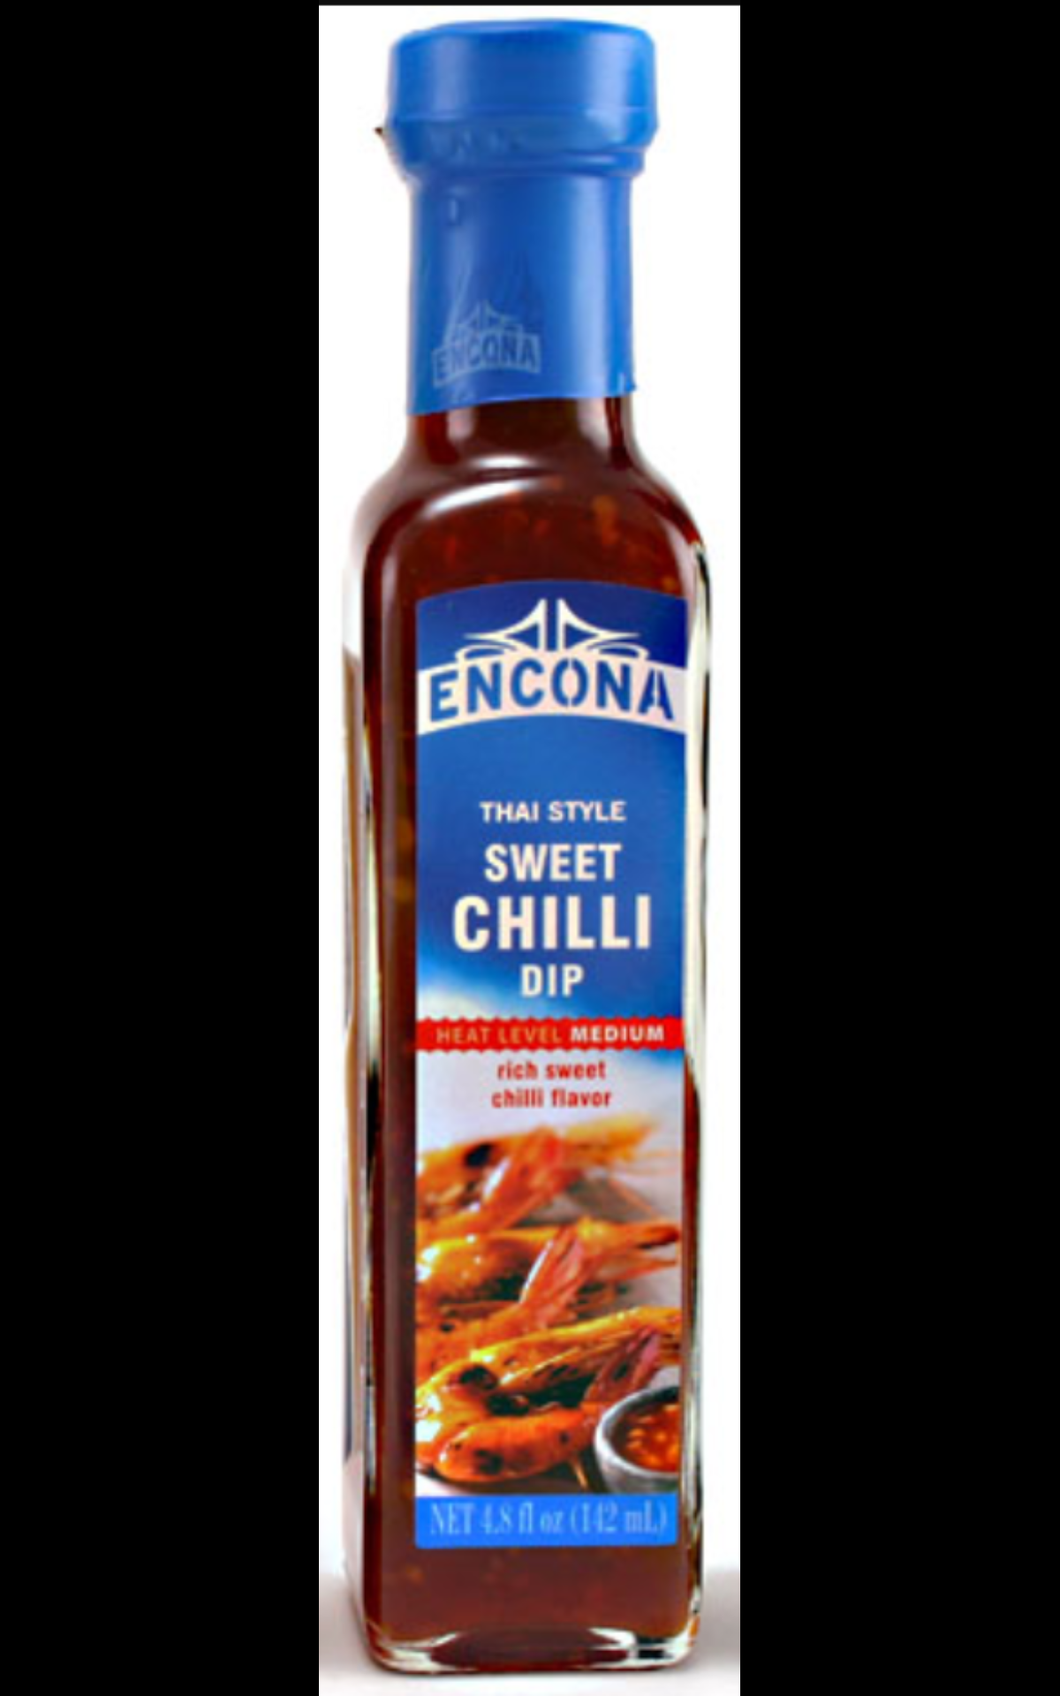 Encona Thai Style Sweet Chilli Dip - Evansfoods